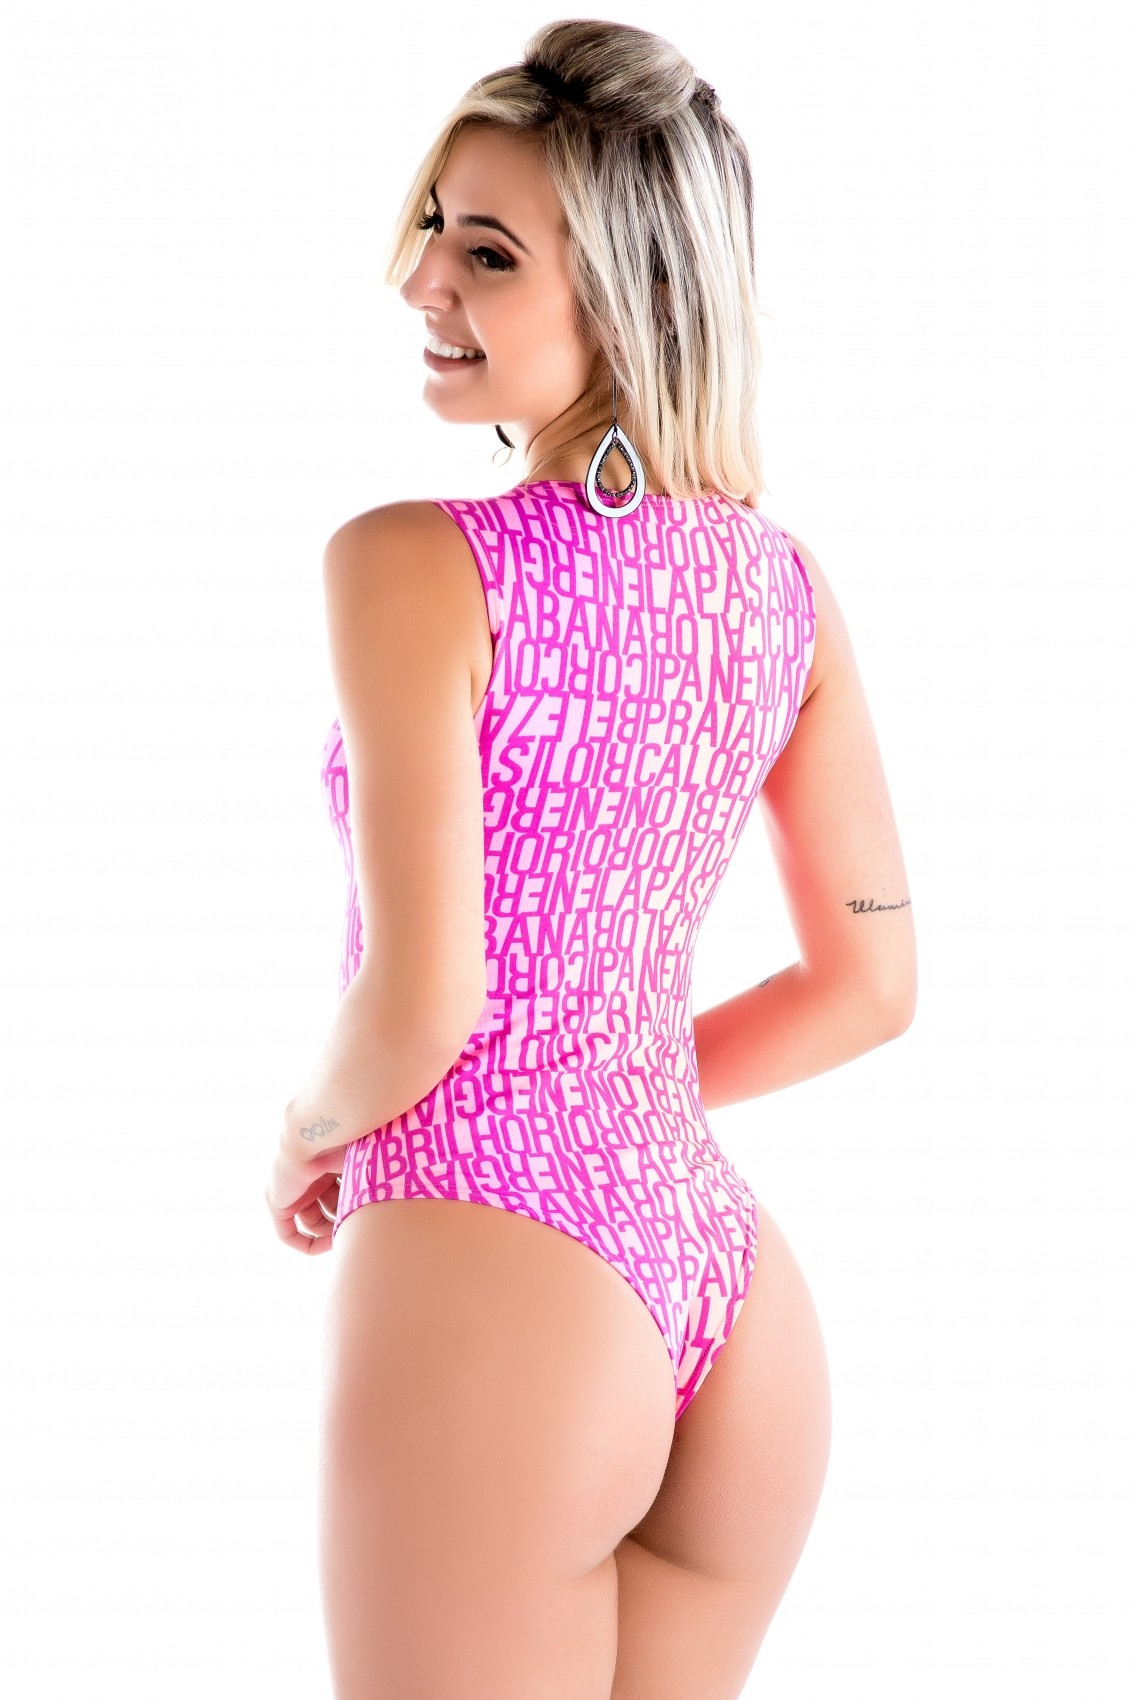 Body Regata Pricila de Microfibra Estampada sem Bojo